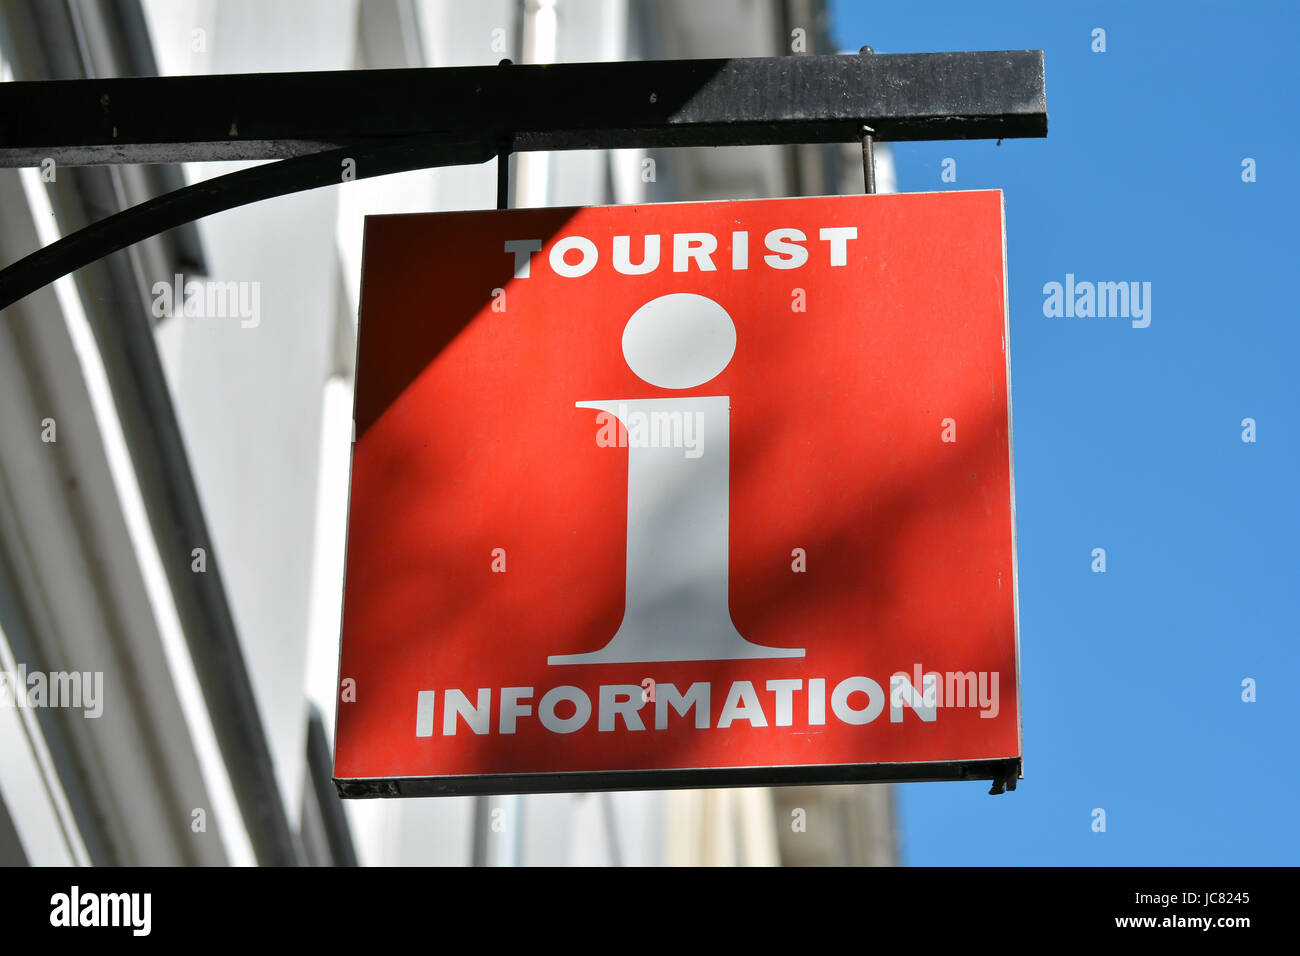 tourist information - Stock Image